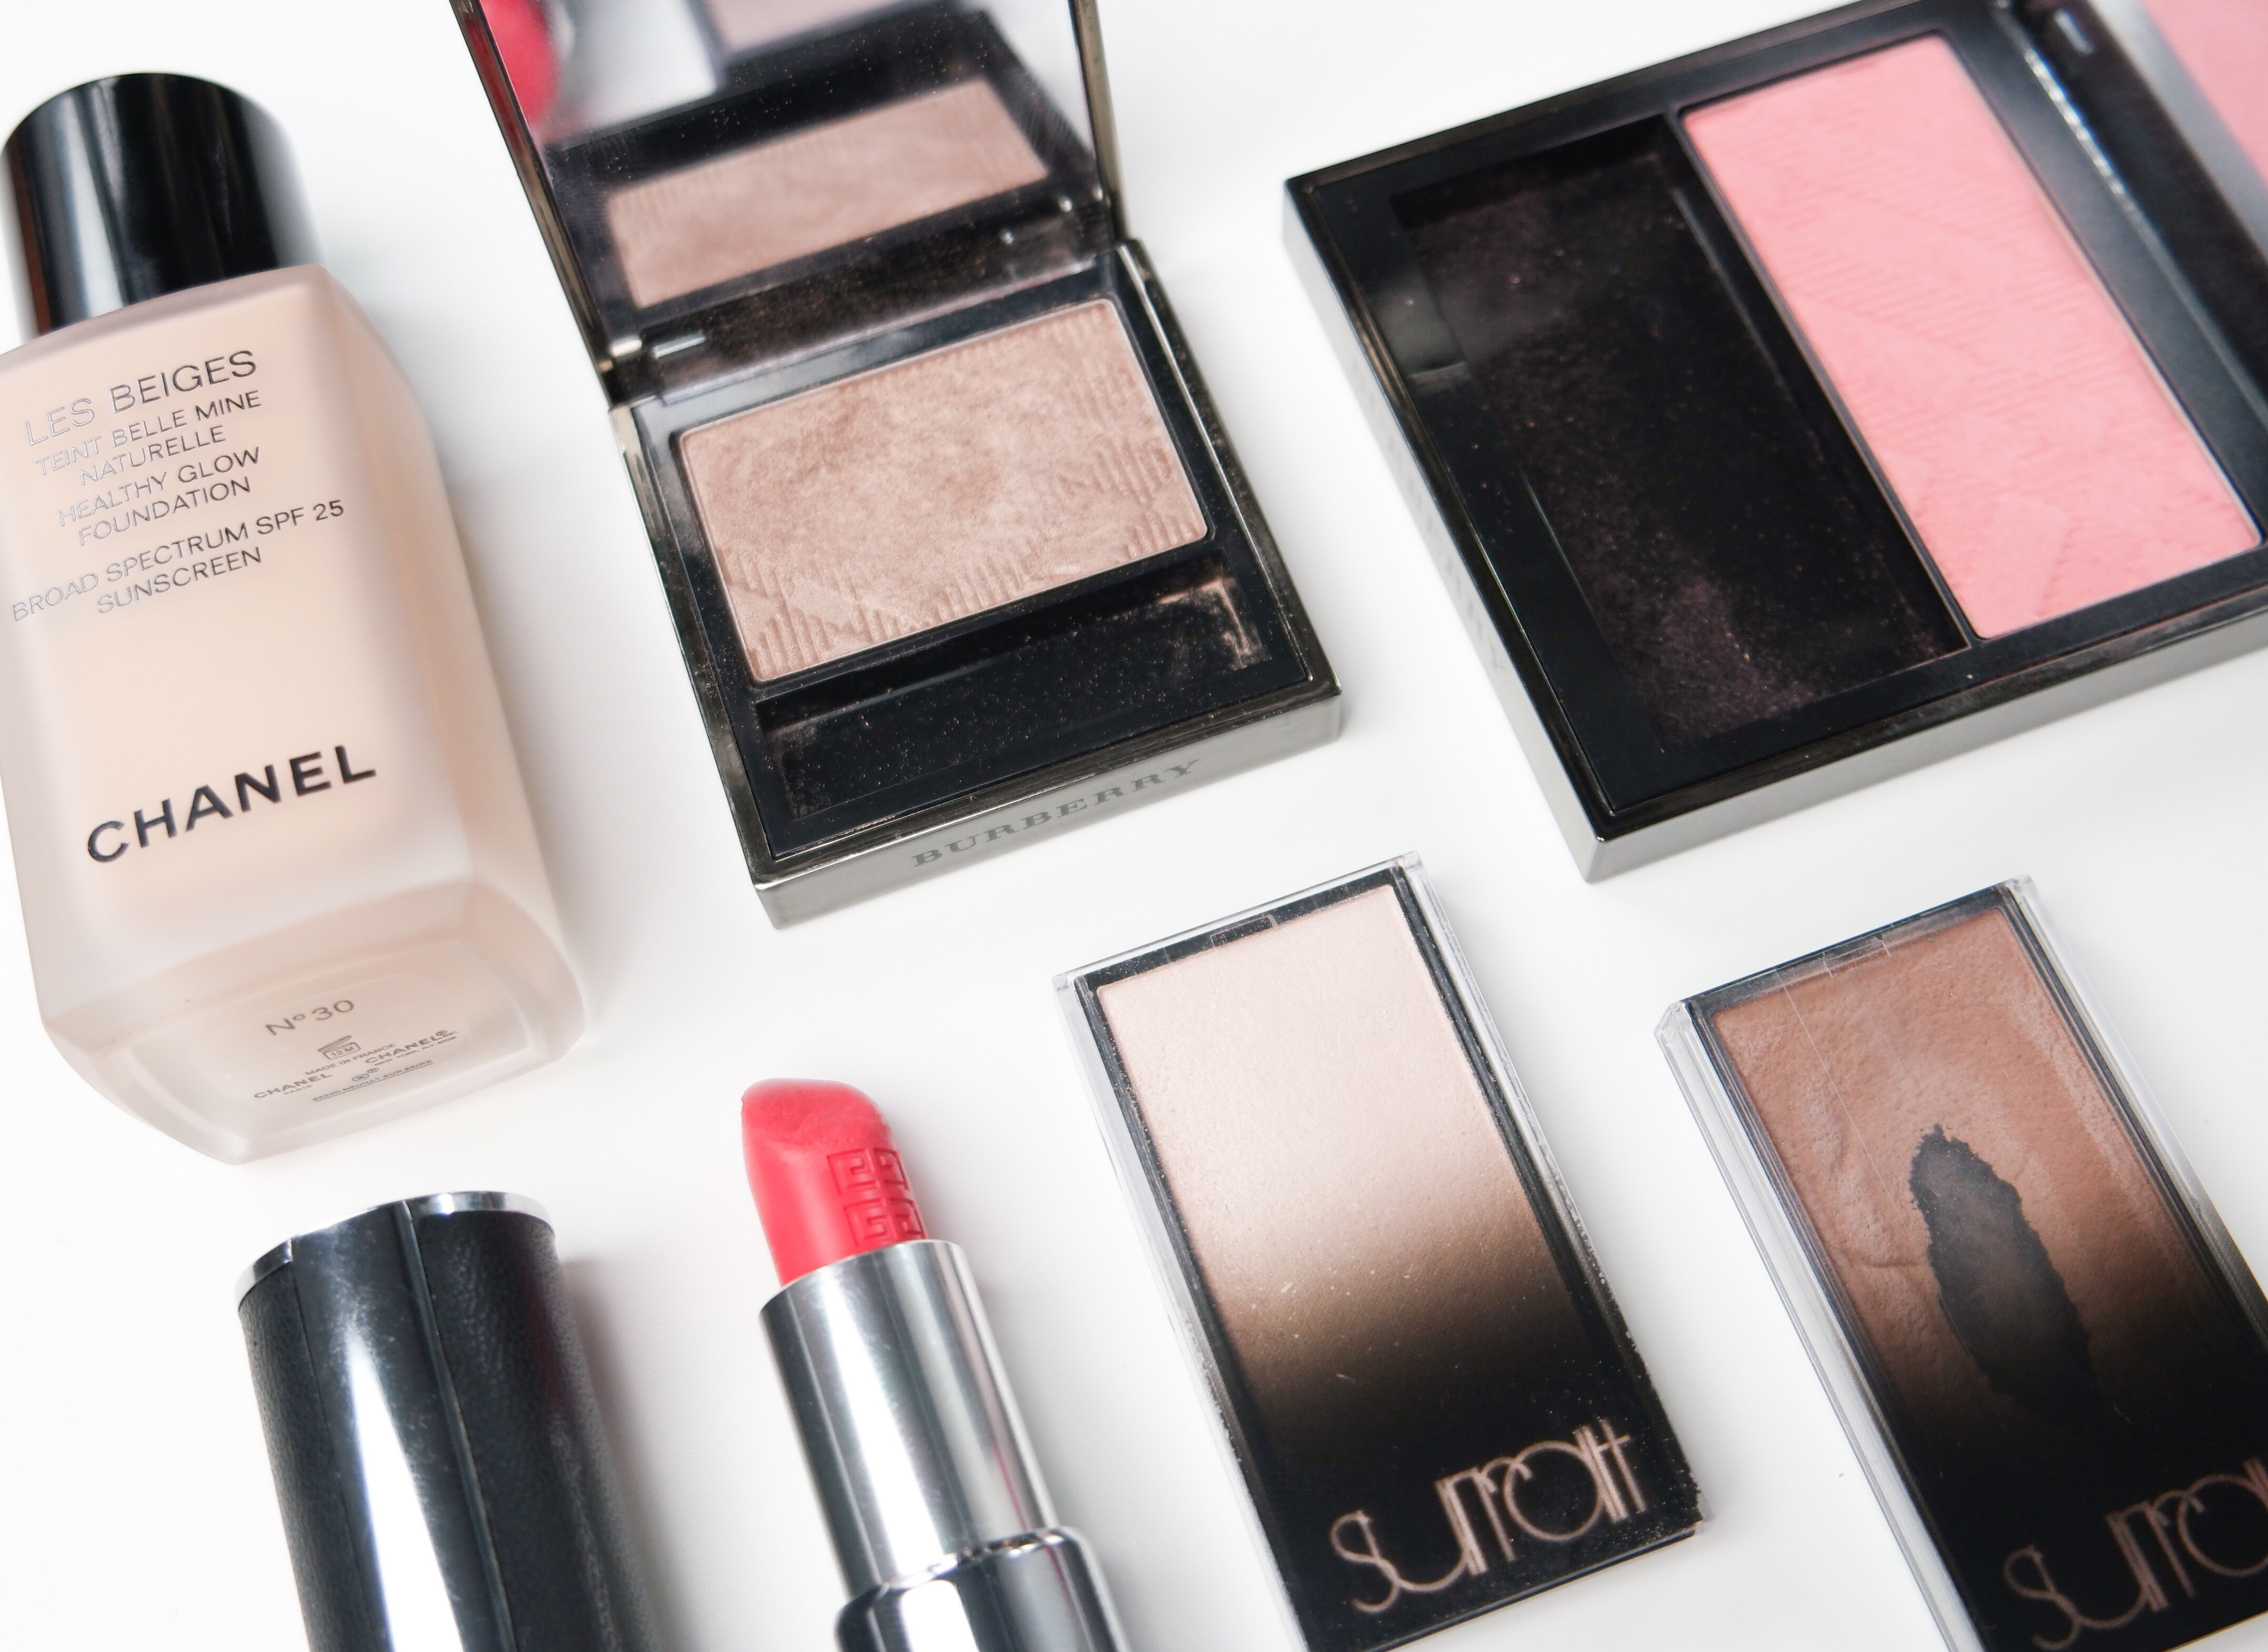 Guide: How to buy makeup as a gift